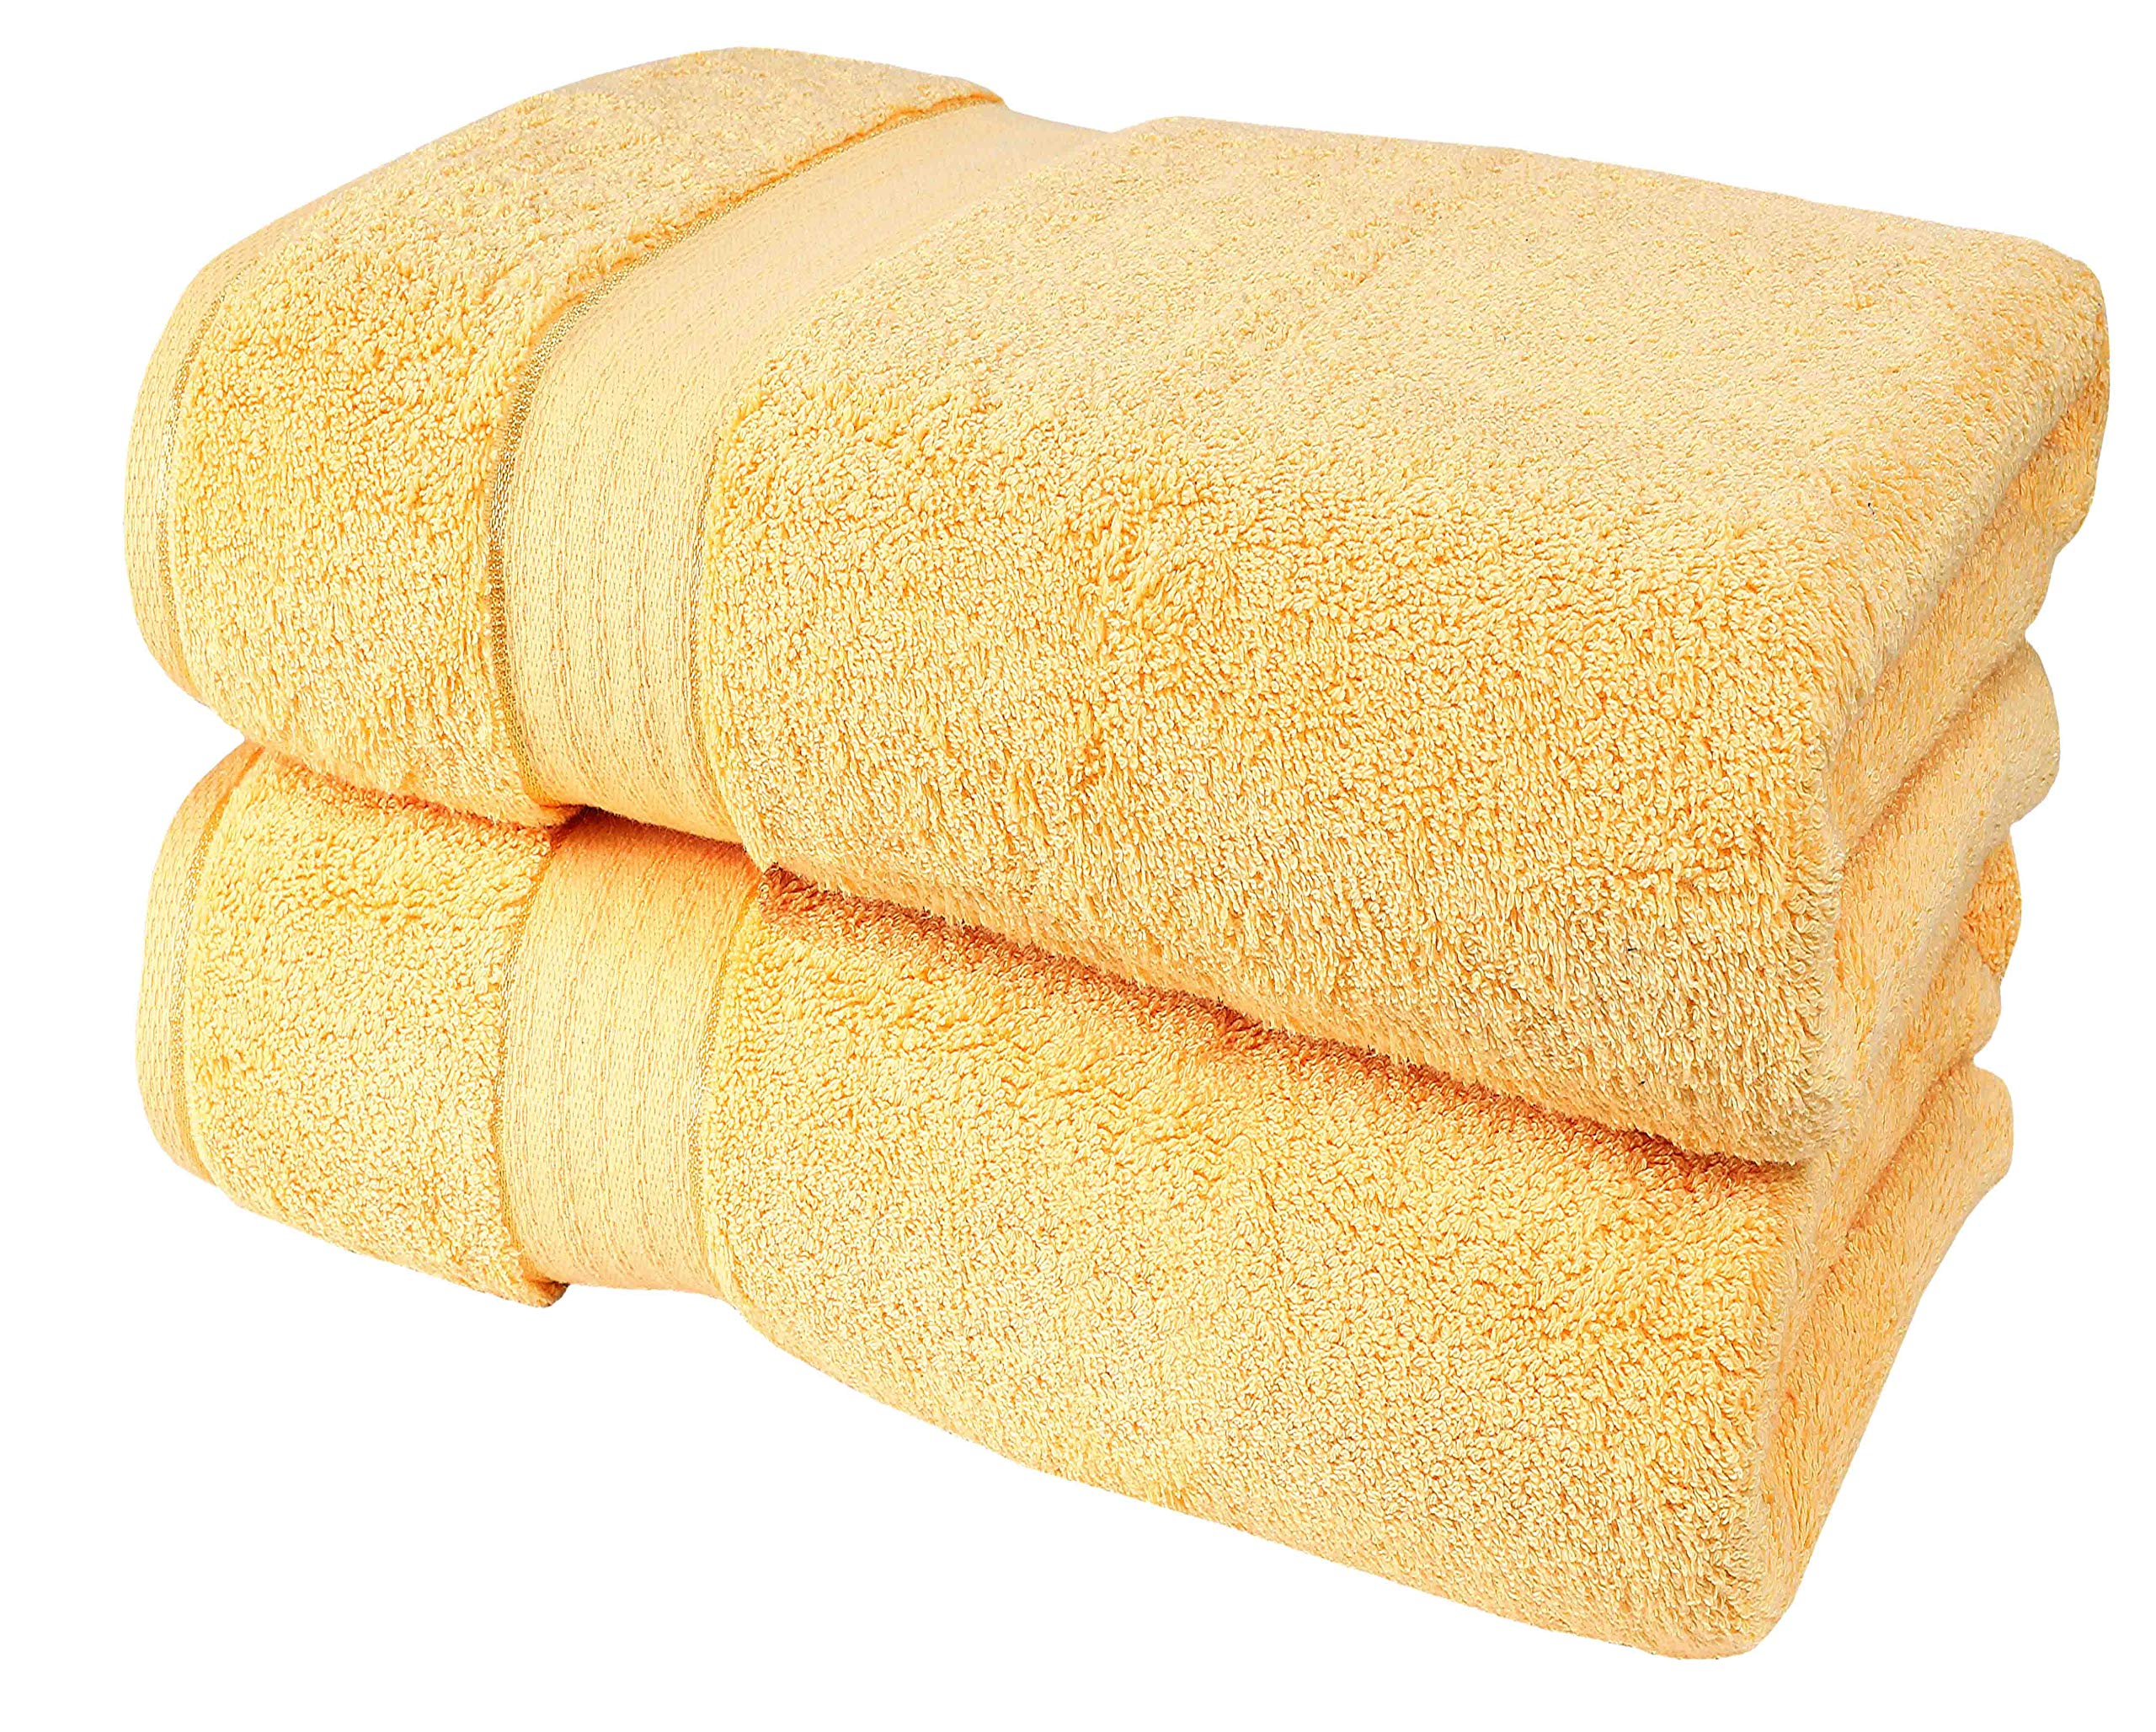 Glamburg 700 GSM Premium Cotton 2-Pack Oversized Extra Large Bath Sheet Set - 100% Combed Cotton - 2 Bath Sheets 35x70 - Luxury Hotel & Spa Quality - Durable Ultra Soft Highly Absorbent - Yellow